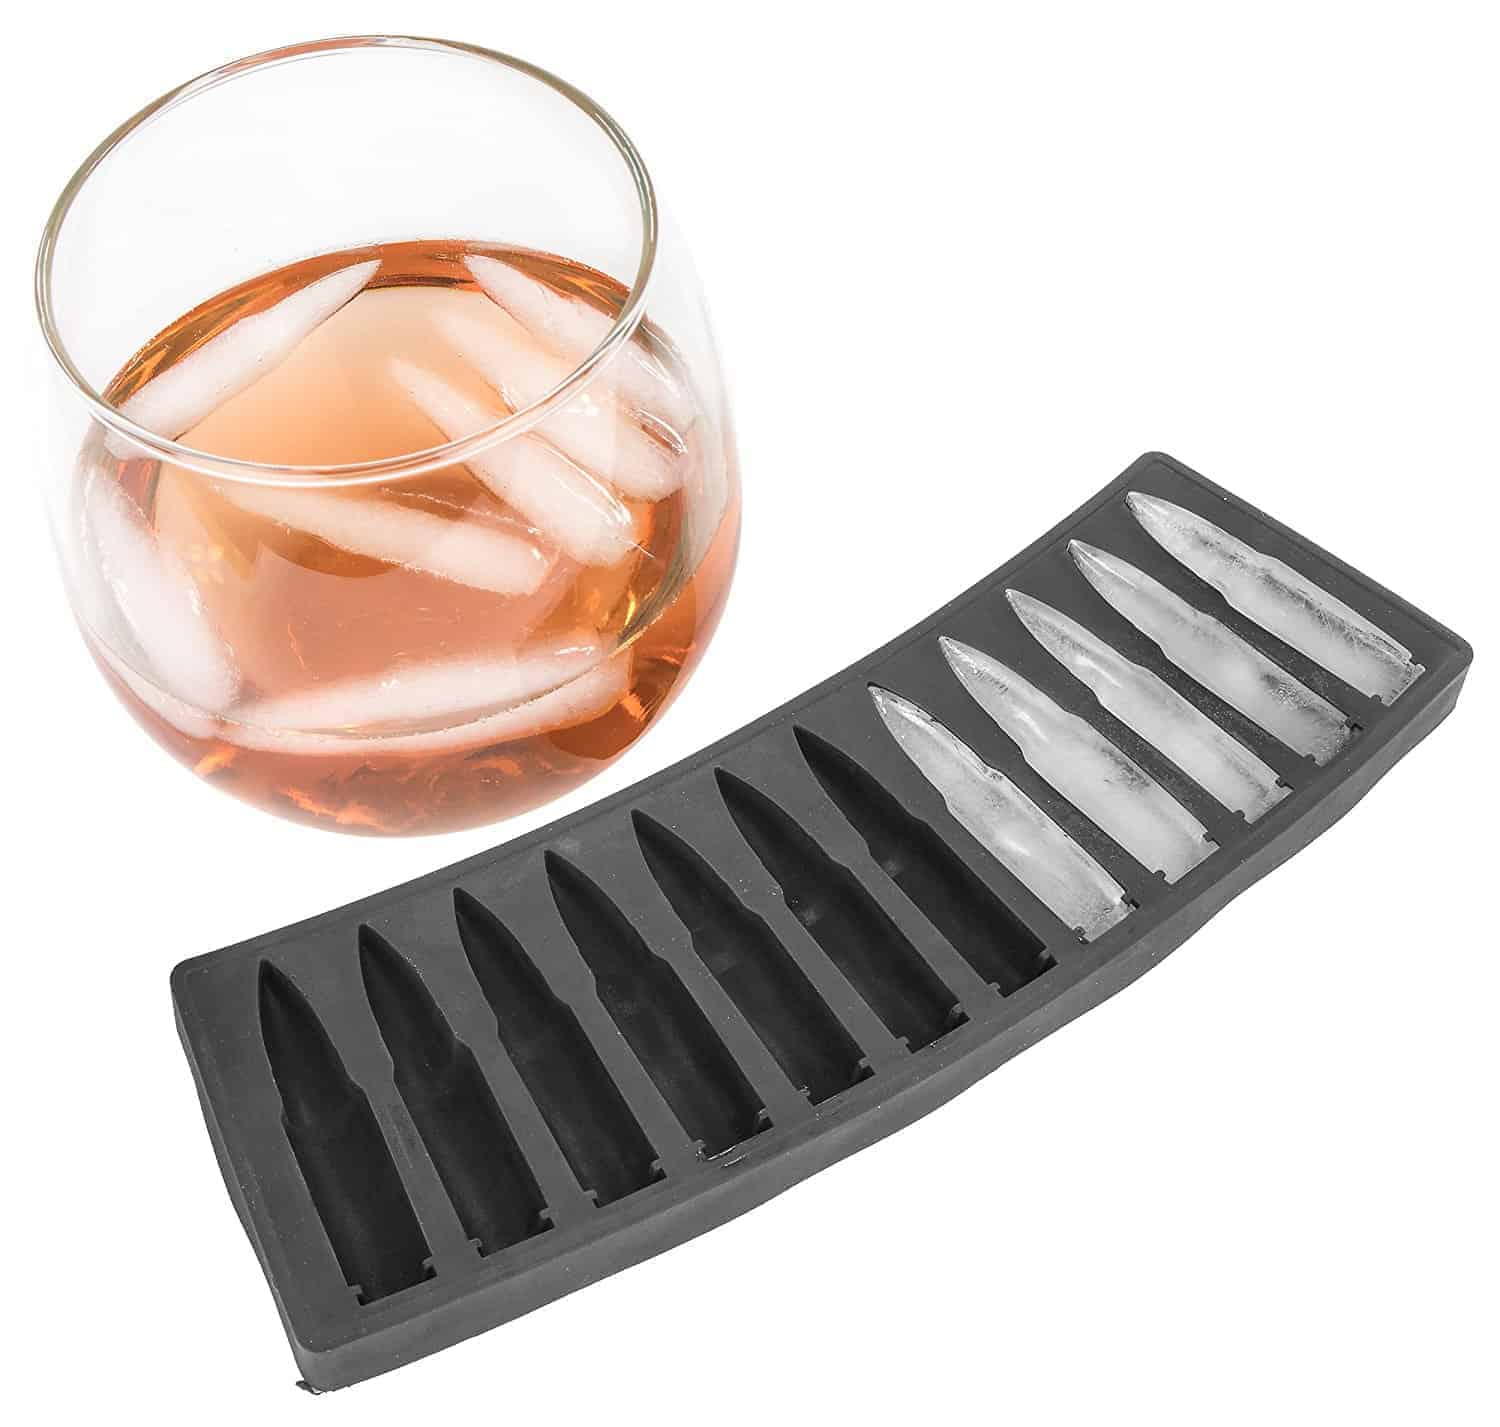 22 Unique And Creative Ice Cube Trays You Can Buy This Summer 8